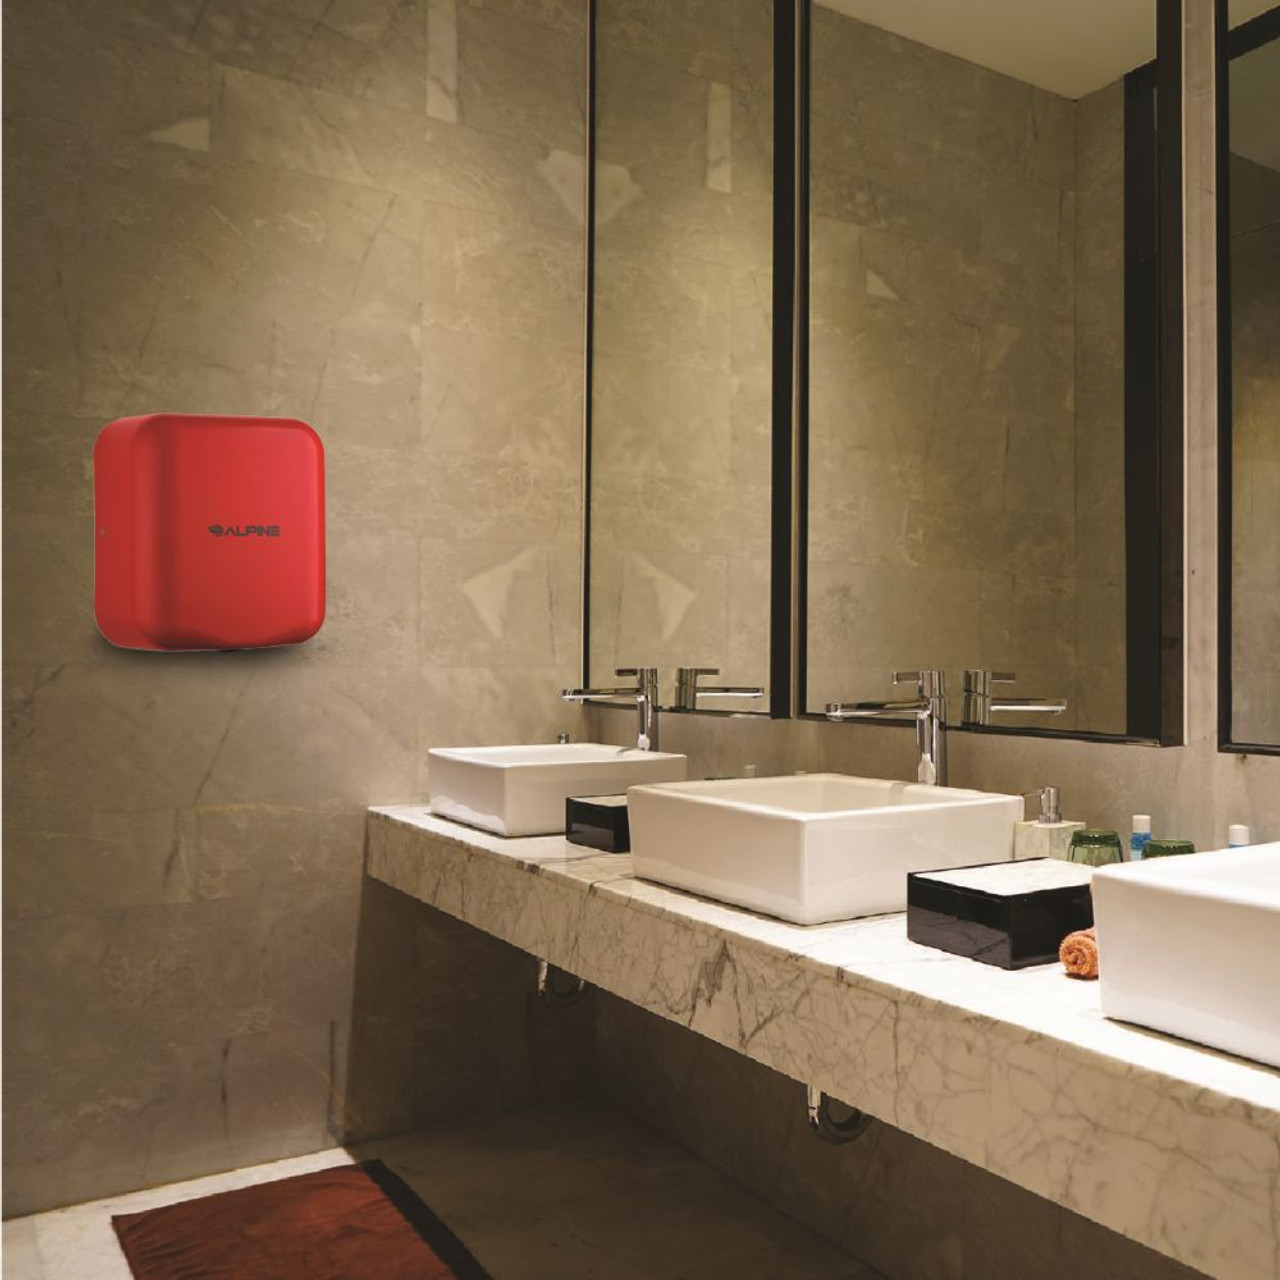 The Hemlock Automatic Hand Dryer comes in multiple colors such as Red.